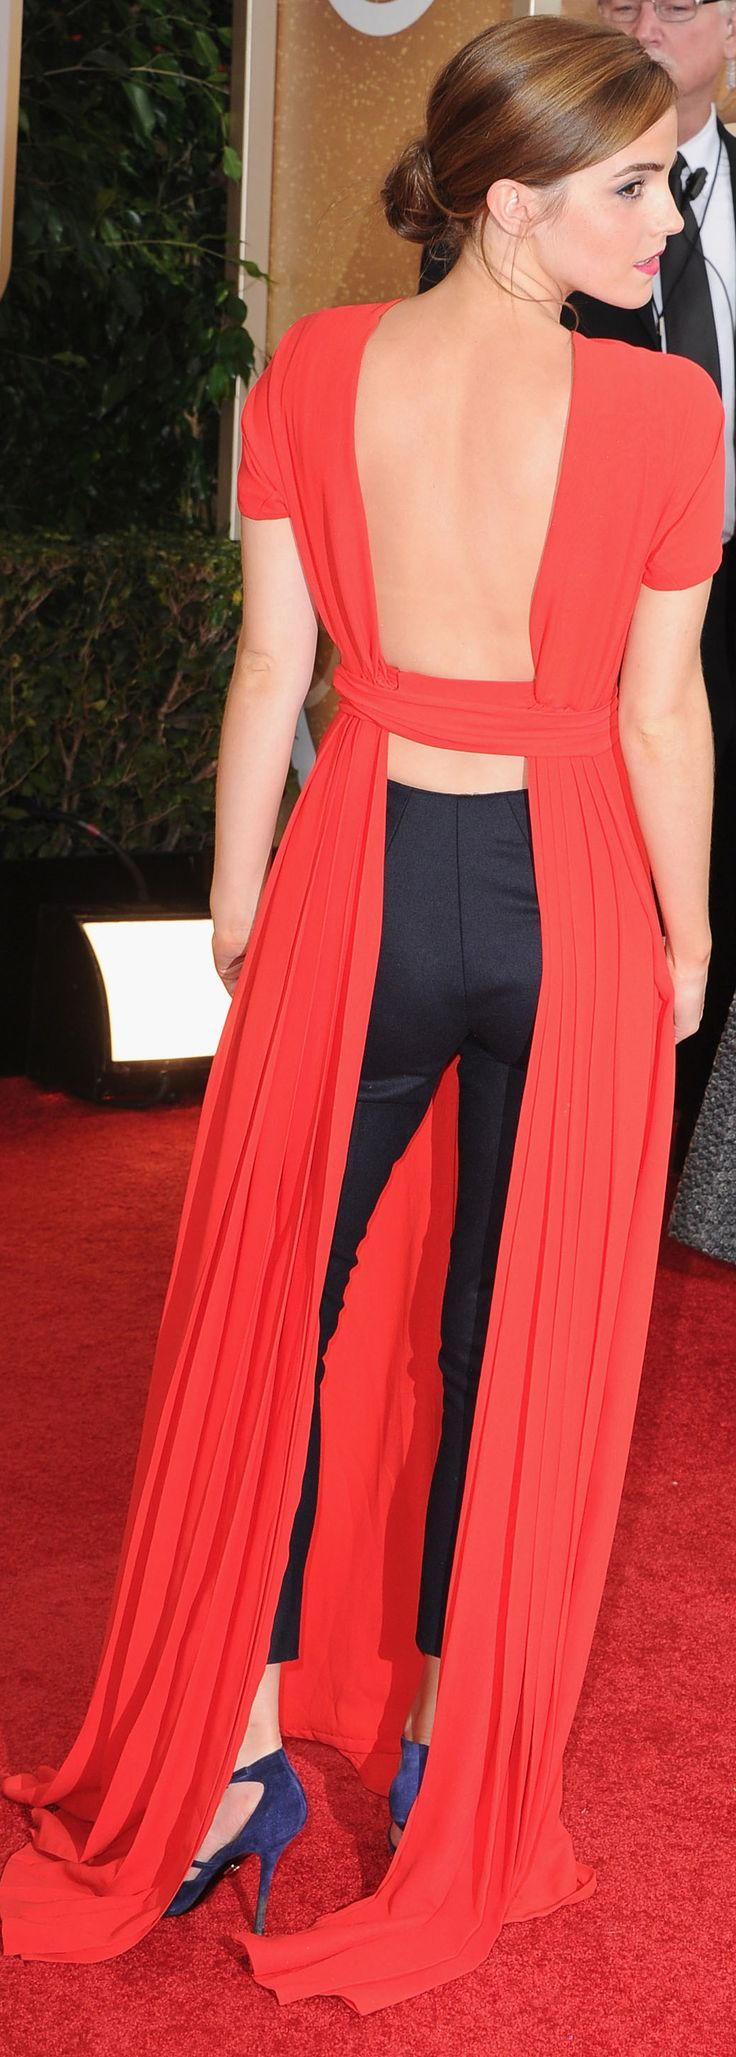 Emma Watson's dress had a big surprise on the 2014 Golden Globes  | The House of Beccaria   dressmesweetiedarling for British Millionairess